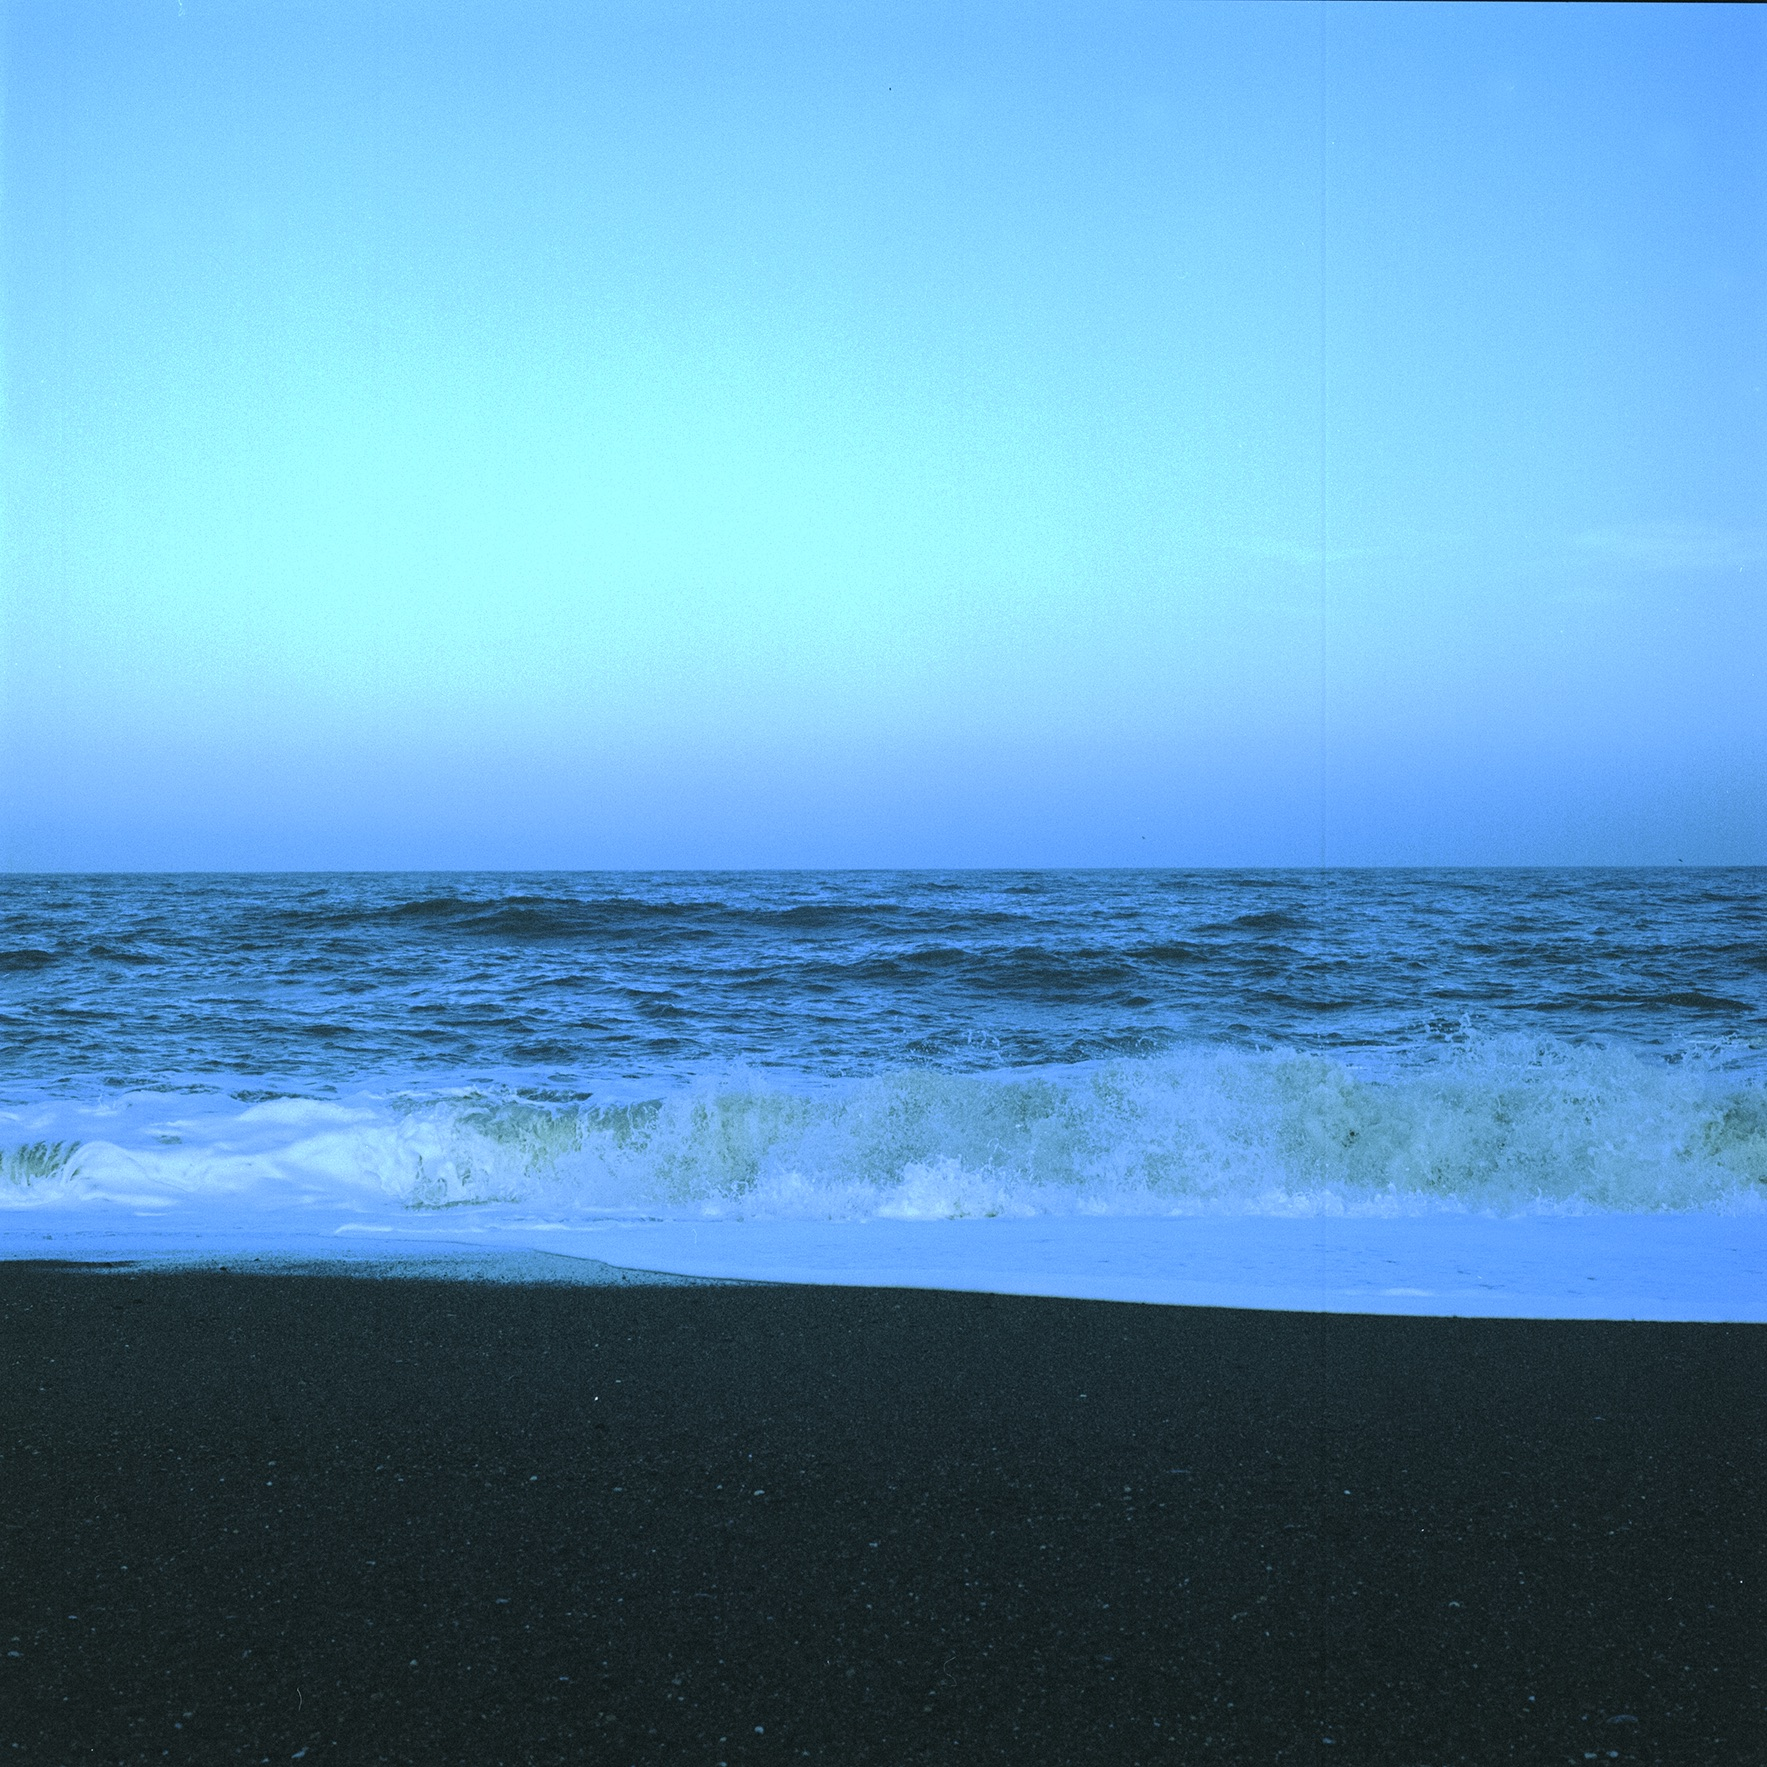 Film: Kodak Portra 400  Camera: Hasselblad 500C/M  Location: Greystones, Co Wicklow, Ireland